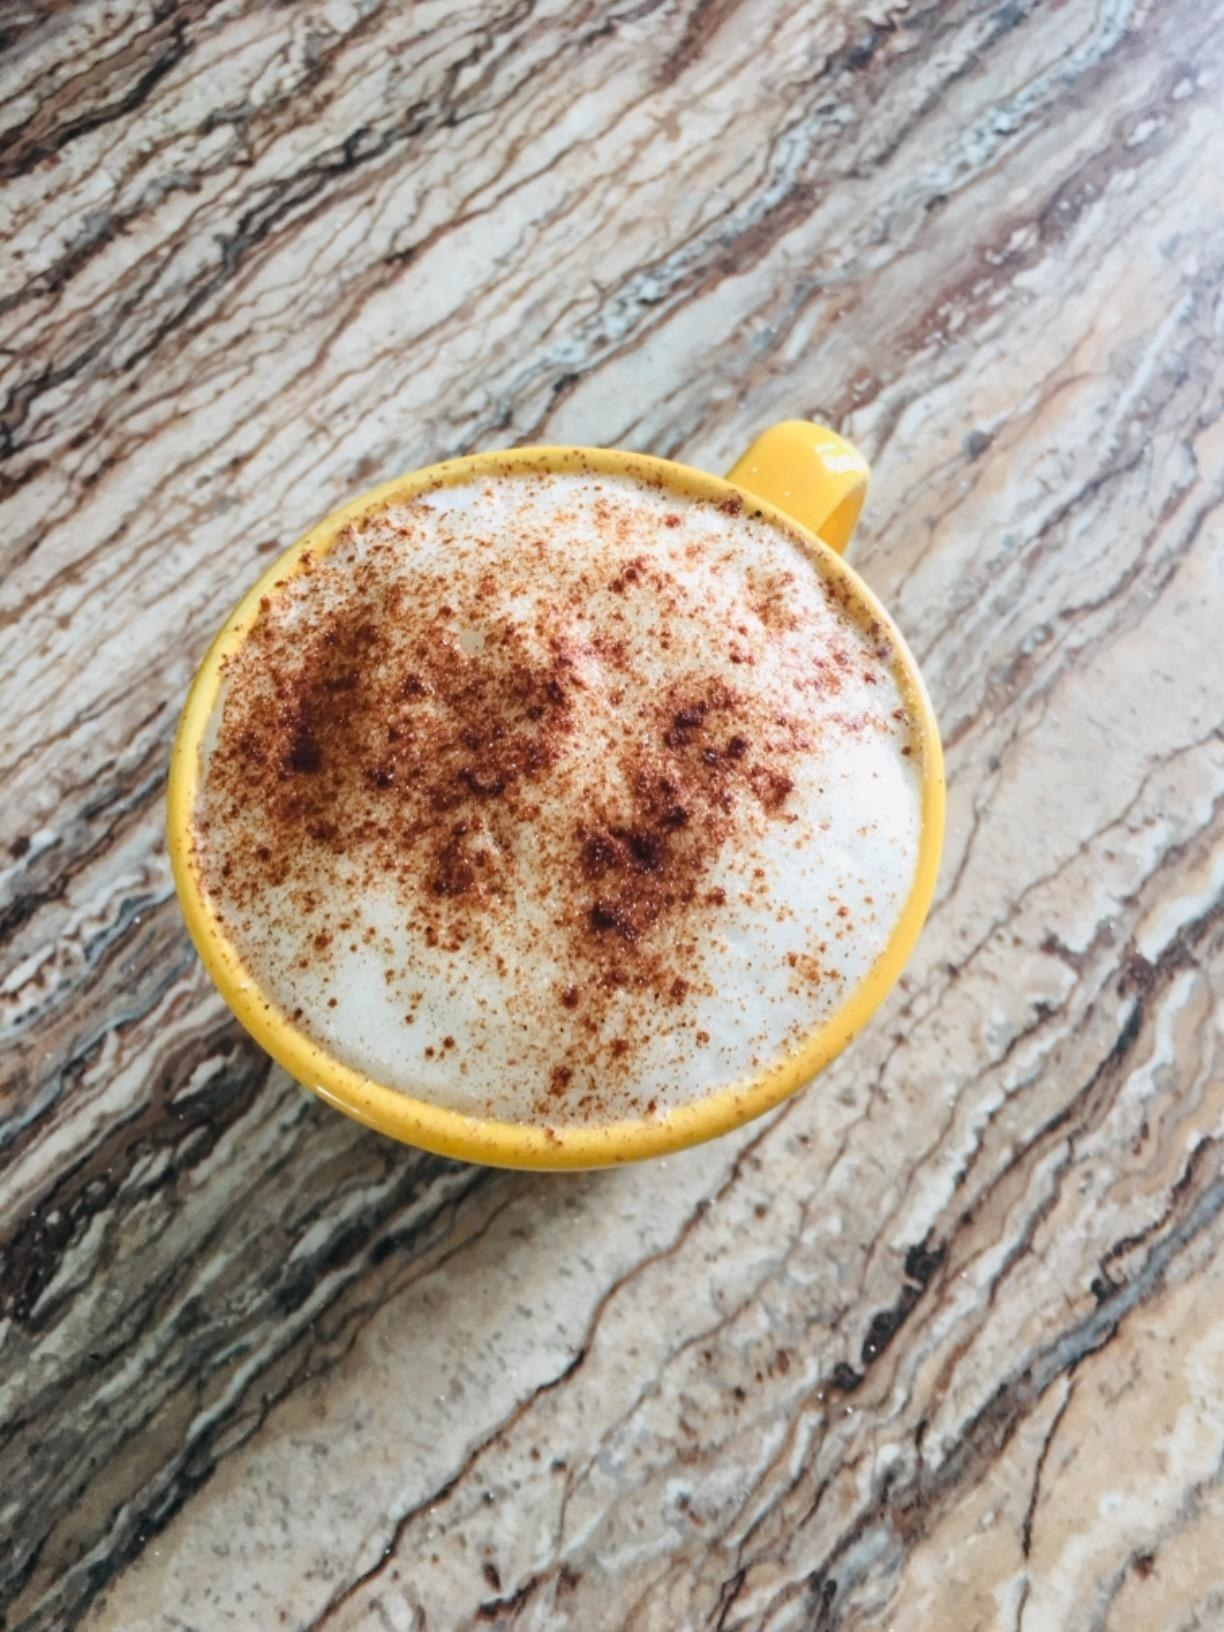 A reviewer's frothy latte dusted with cinnamon